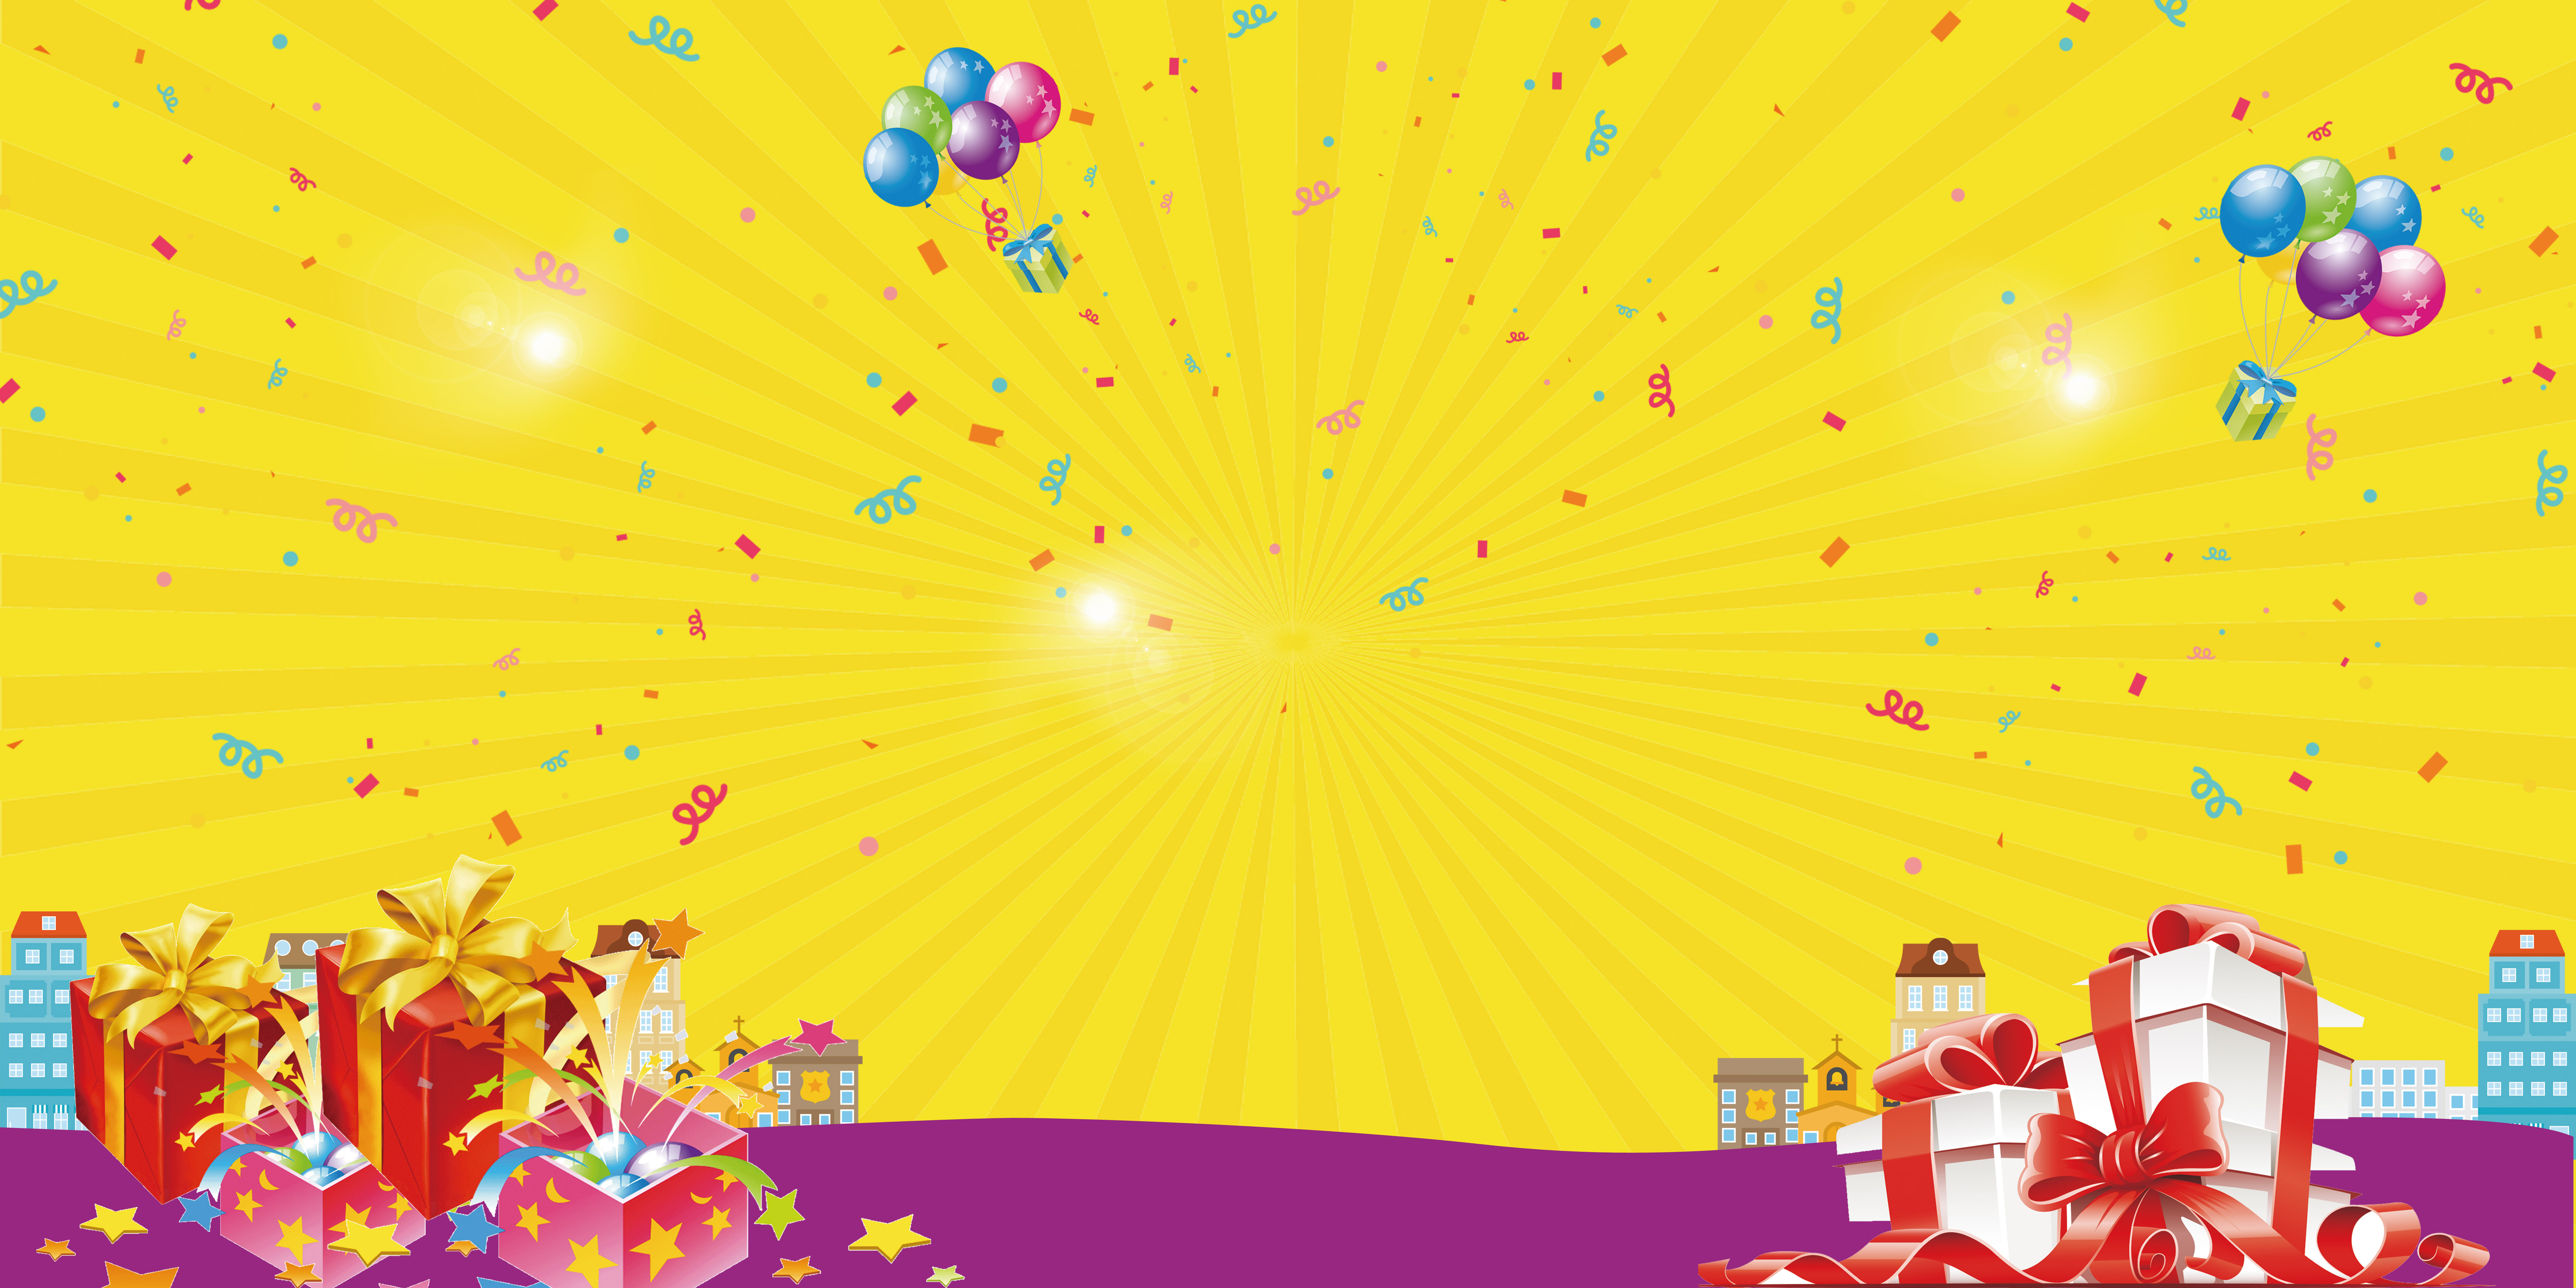 Design Love Fest Fall Wallpaper Welcome To Celebrate The Mid Autumn Festival National Day